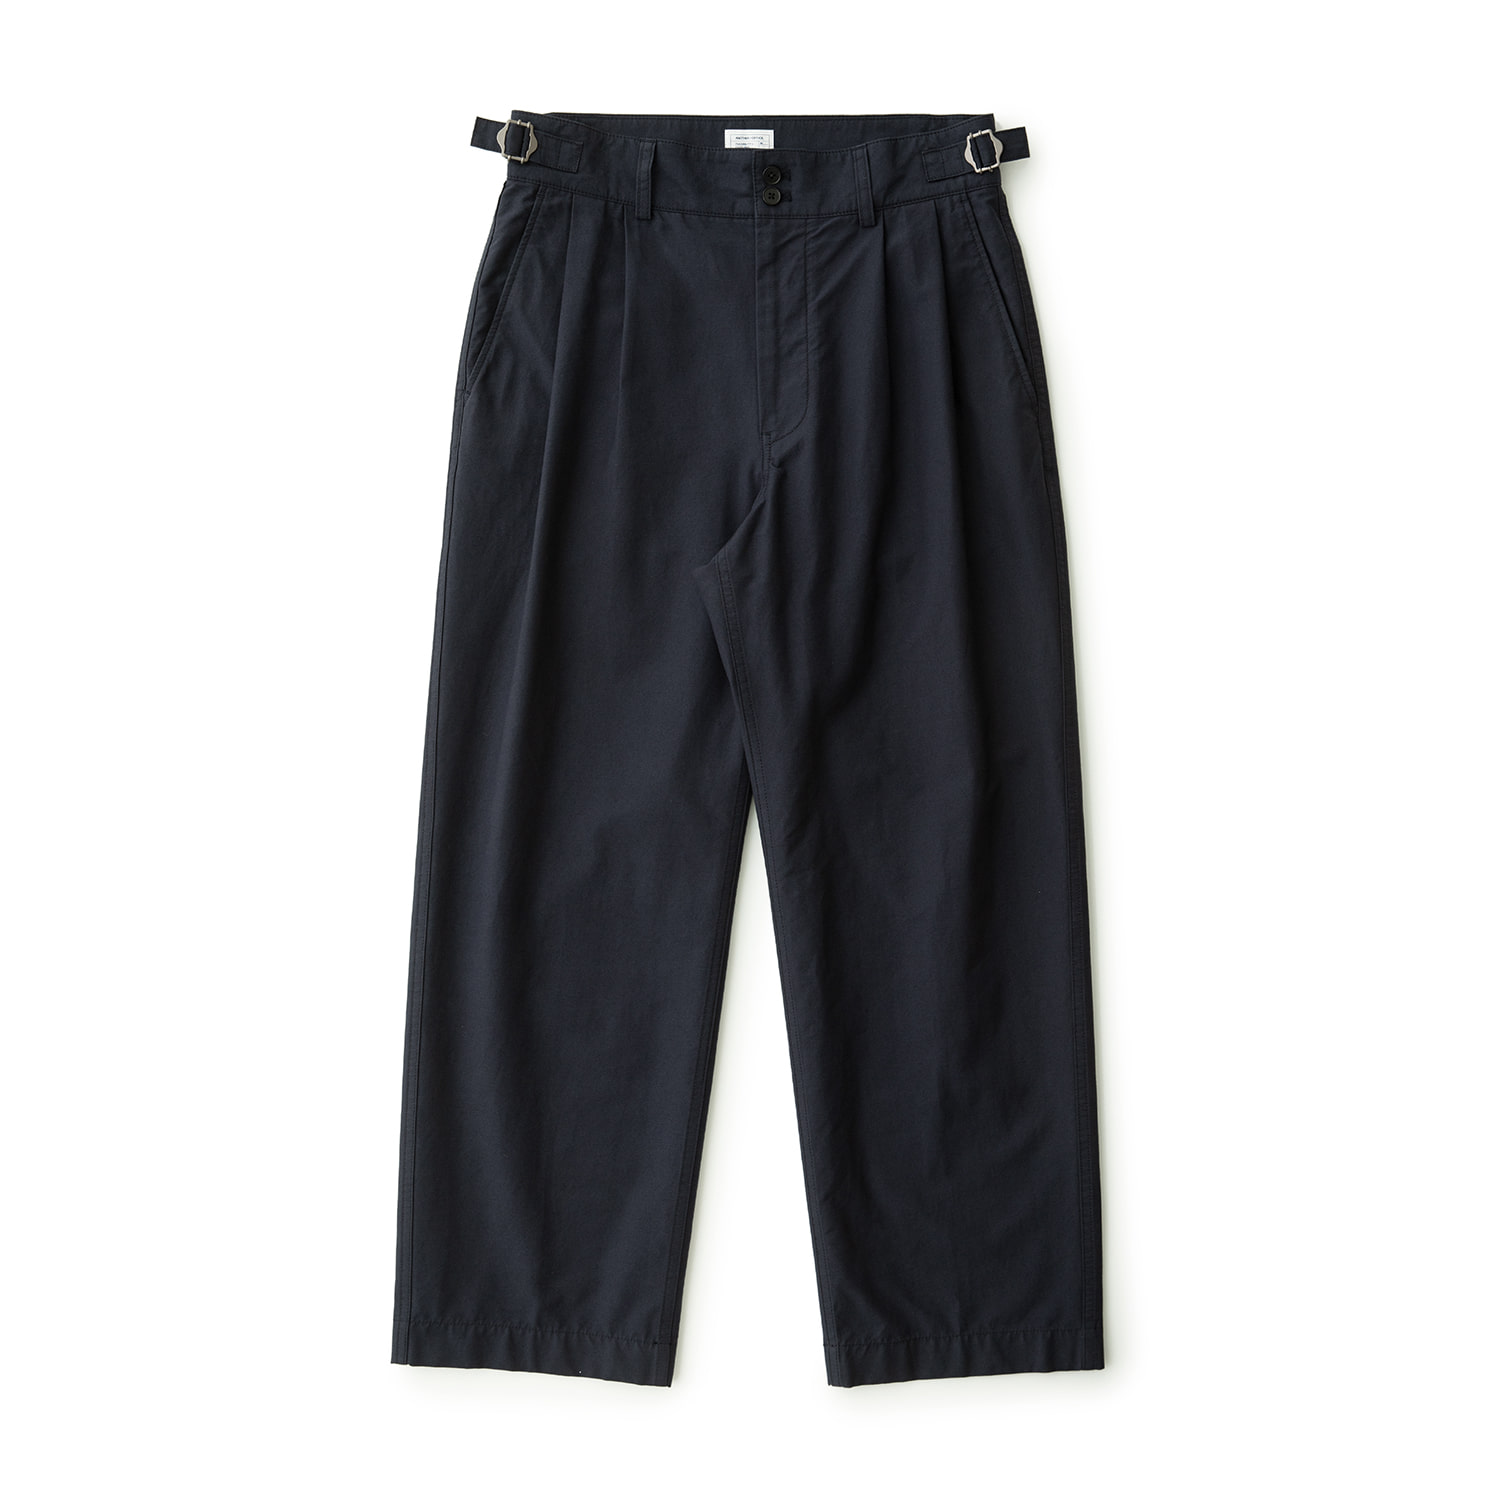 Santiago Doublecloth Pants (Dark Navy)